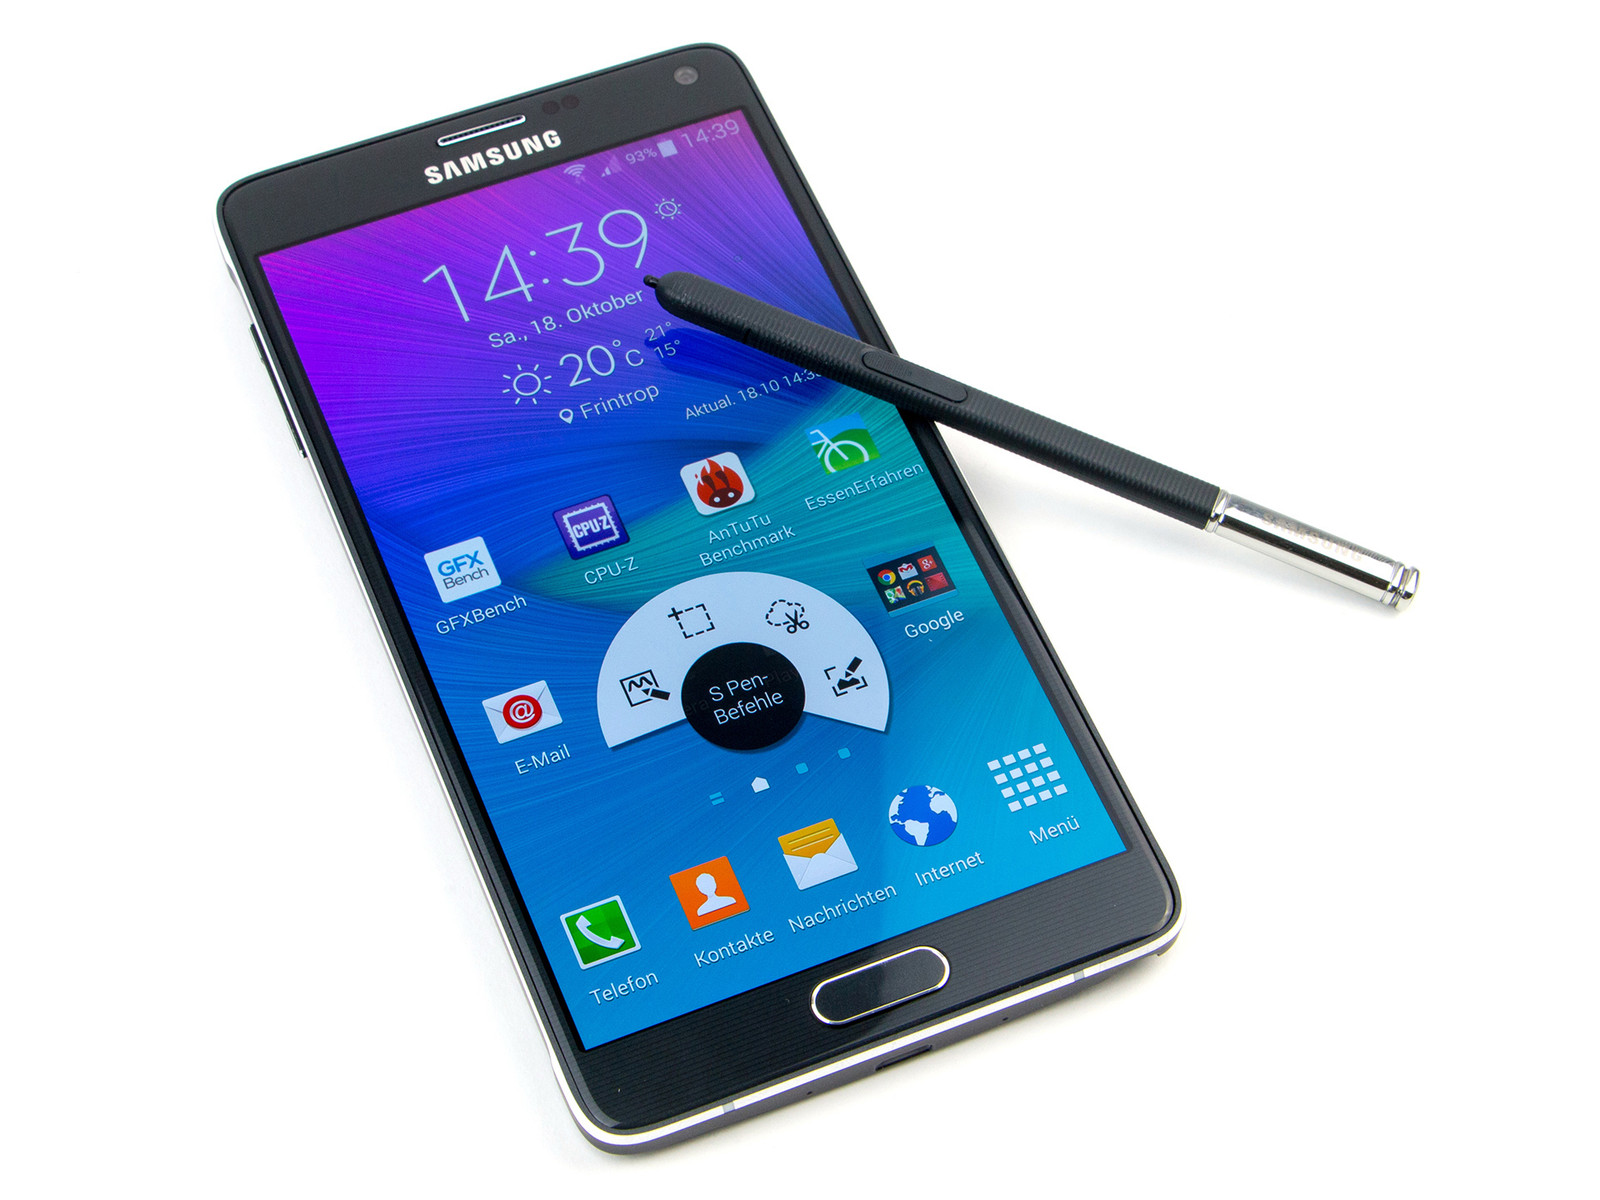 samsung galaxy note 10.1 writing a business